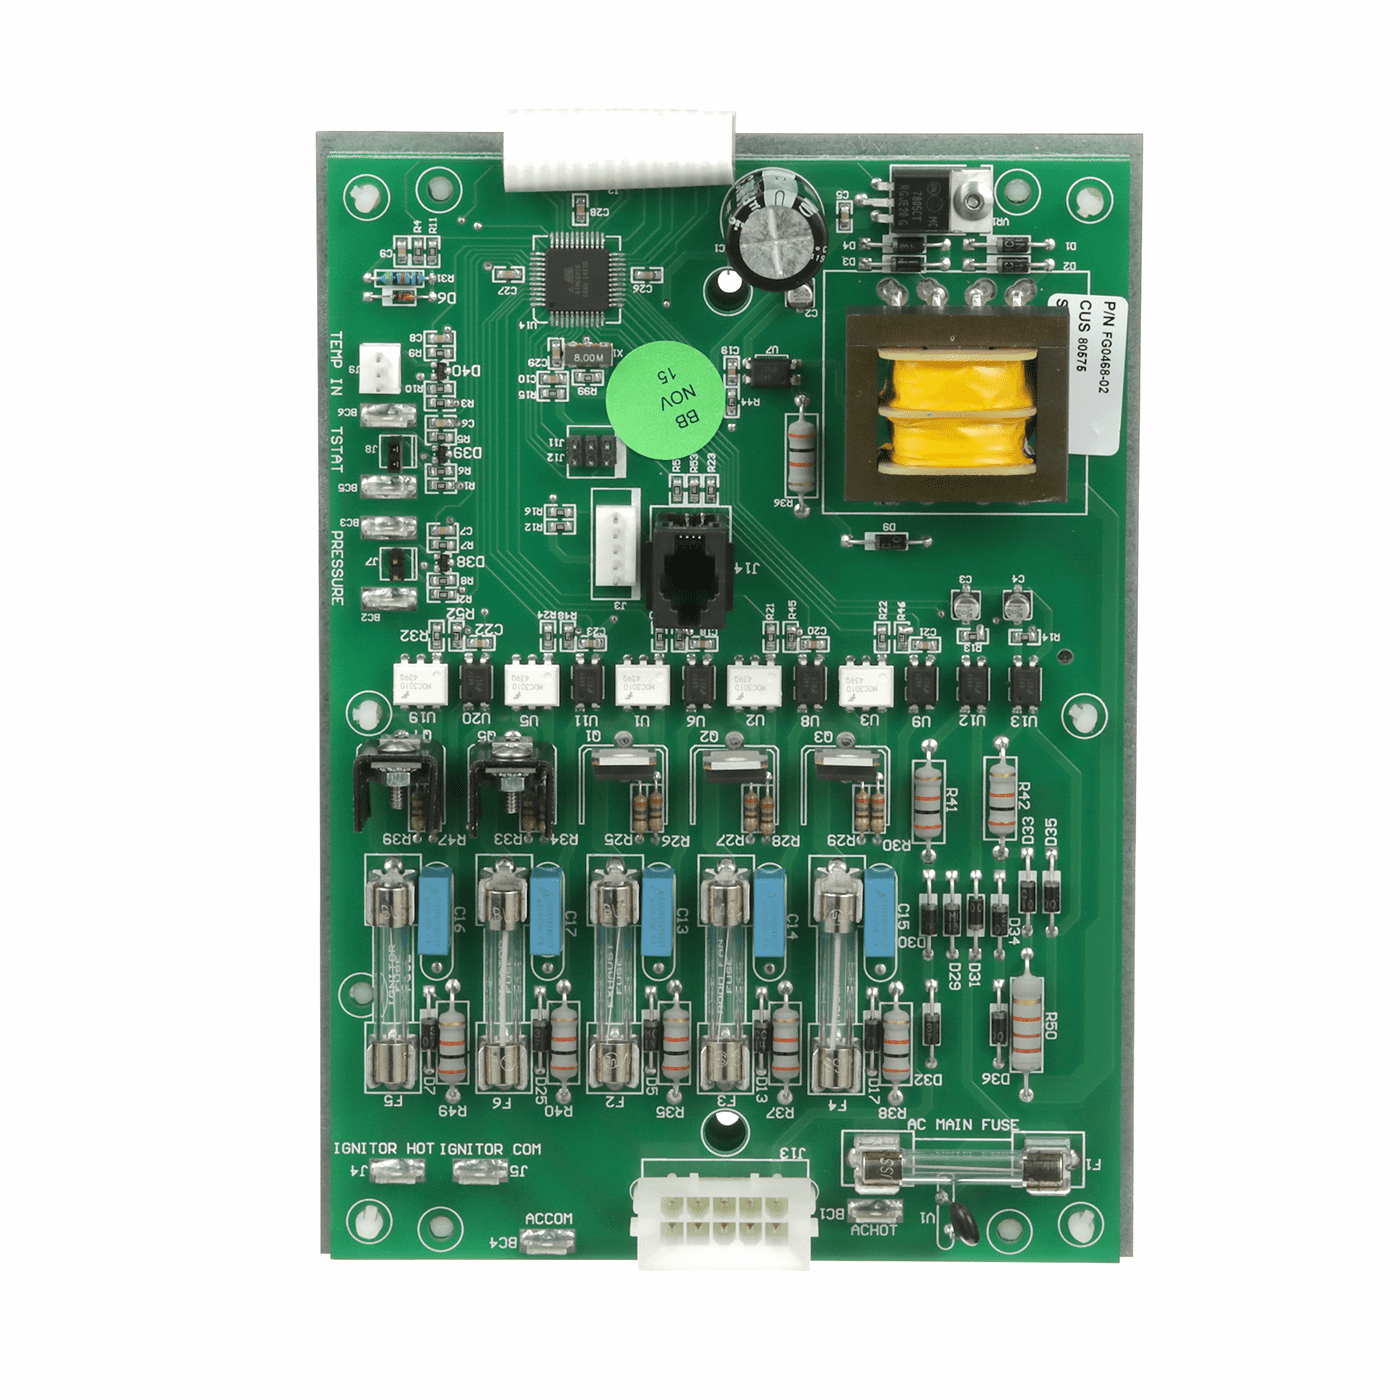 80575 | US Stove Company Circuit Board For American Harvest 6041, 80575